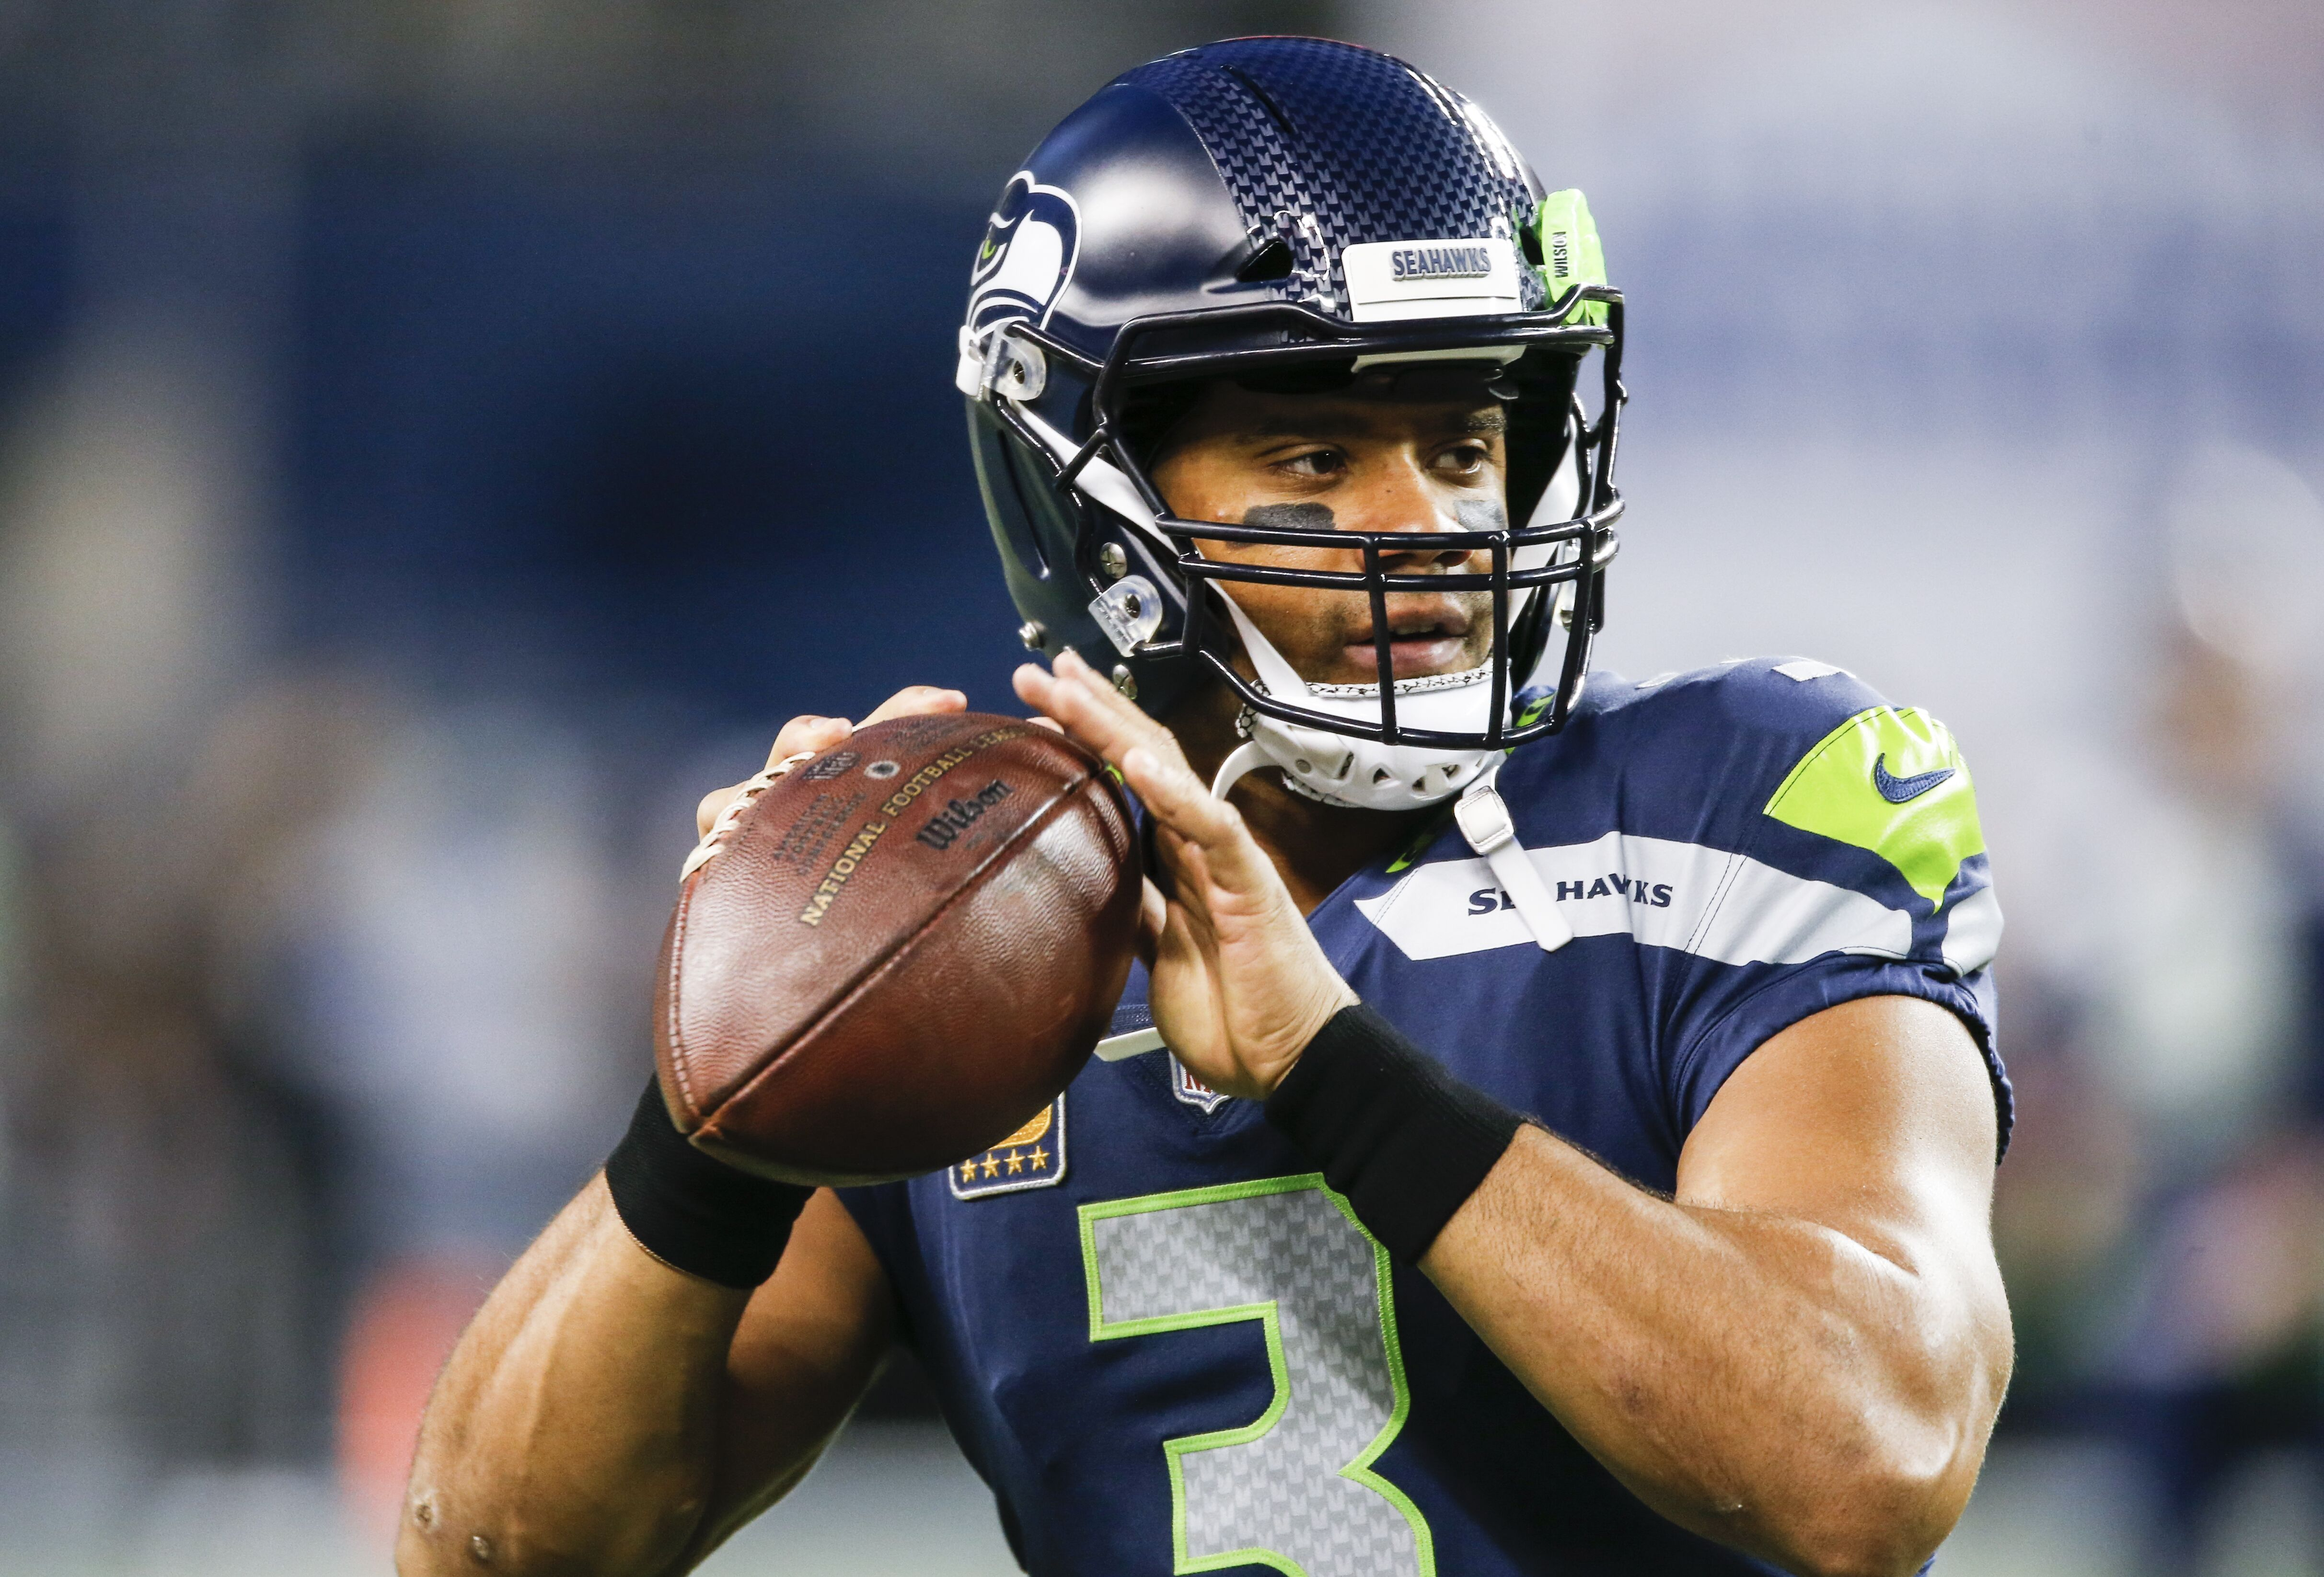 Seahawks: Seahawks Mount Rushmore: 2018 Version, Russell Wilson And